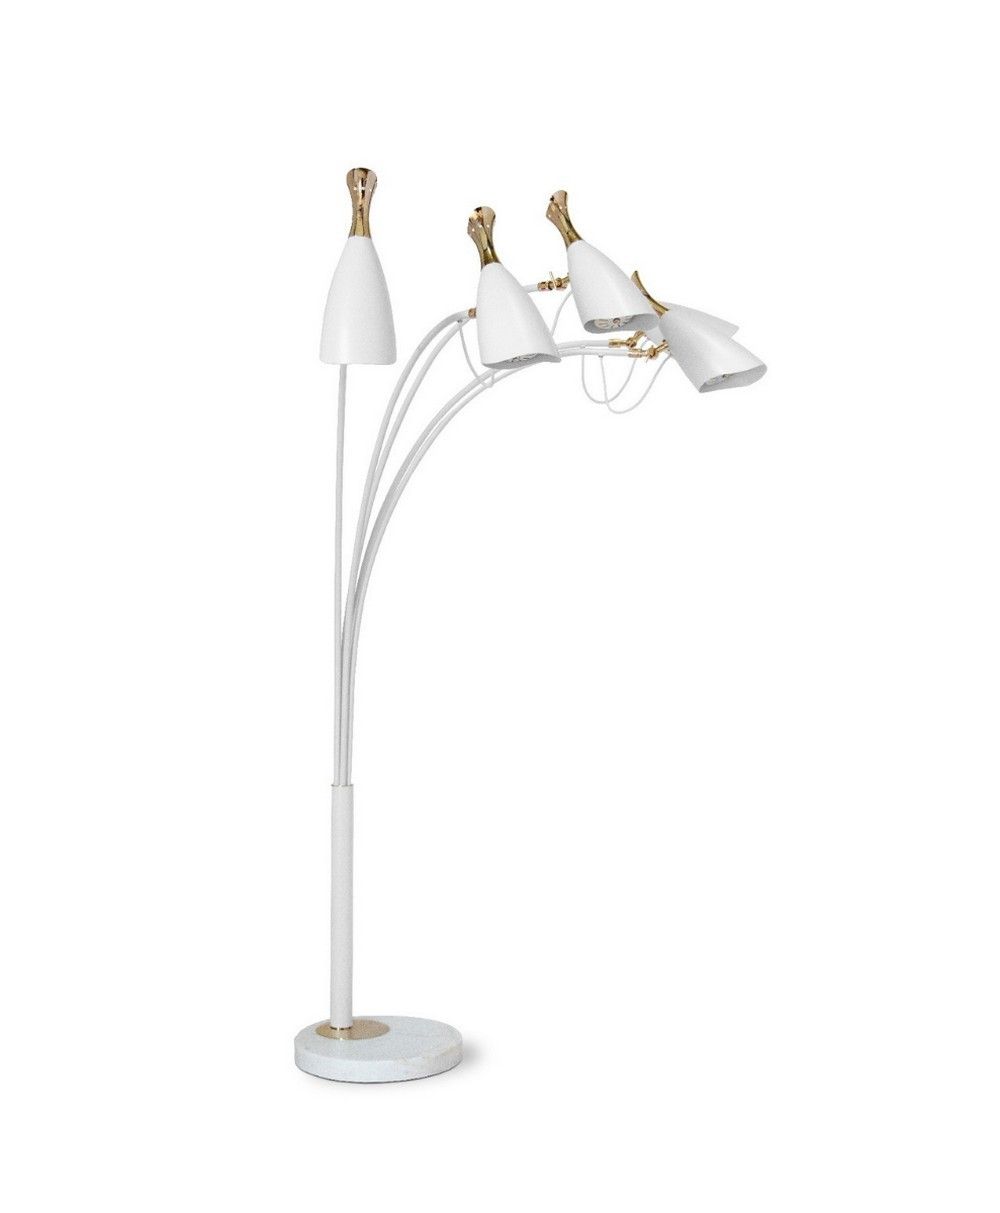 Duke 5 the mid century lighting brands 10th year anniversary mid century lighting brand the mid